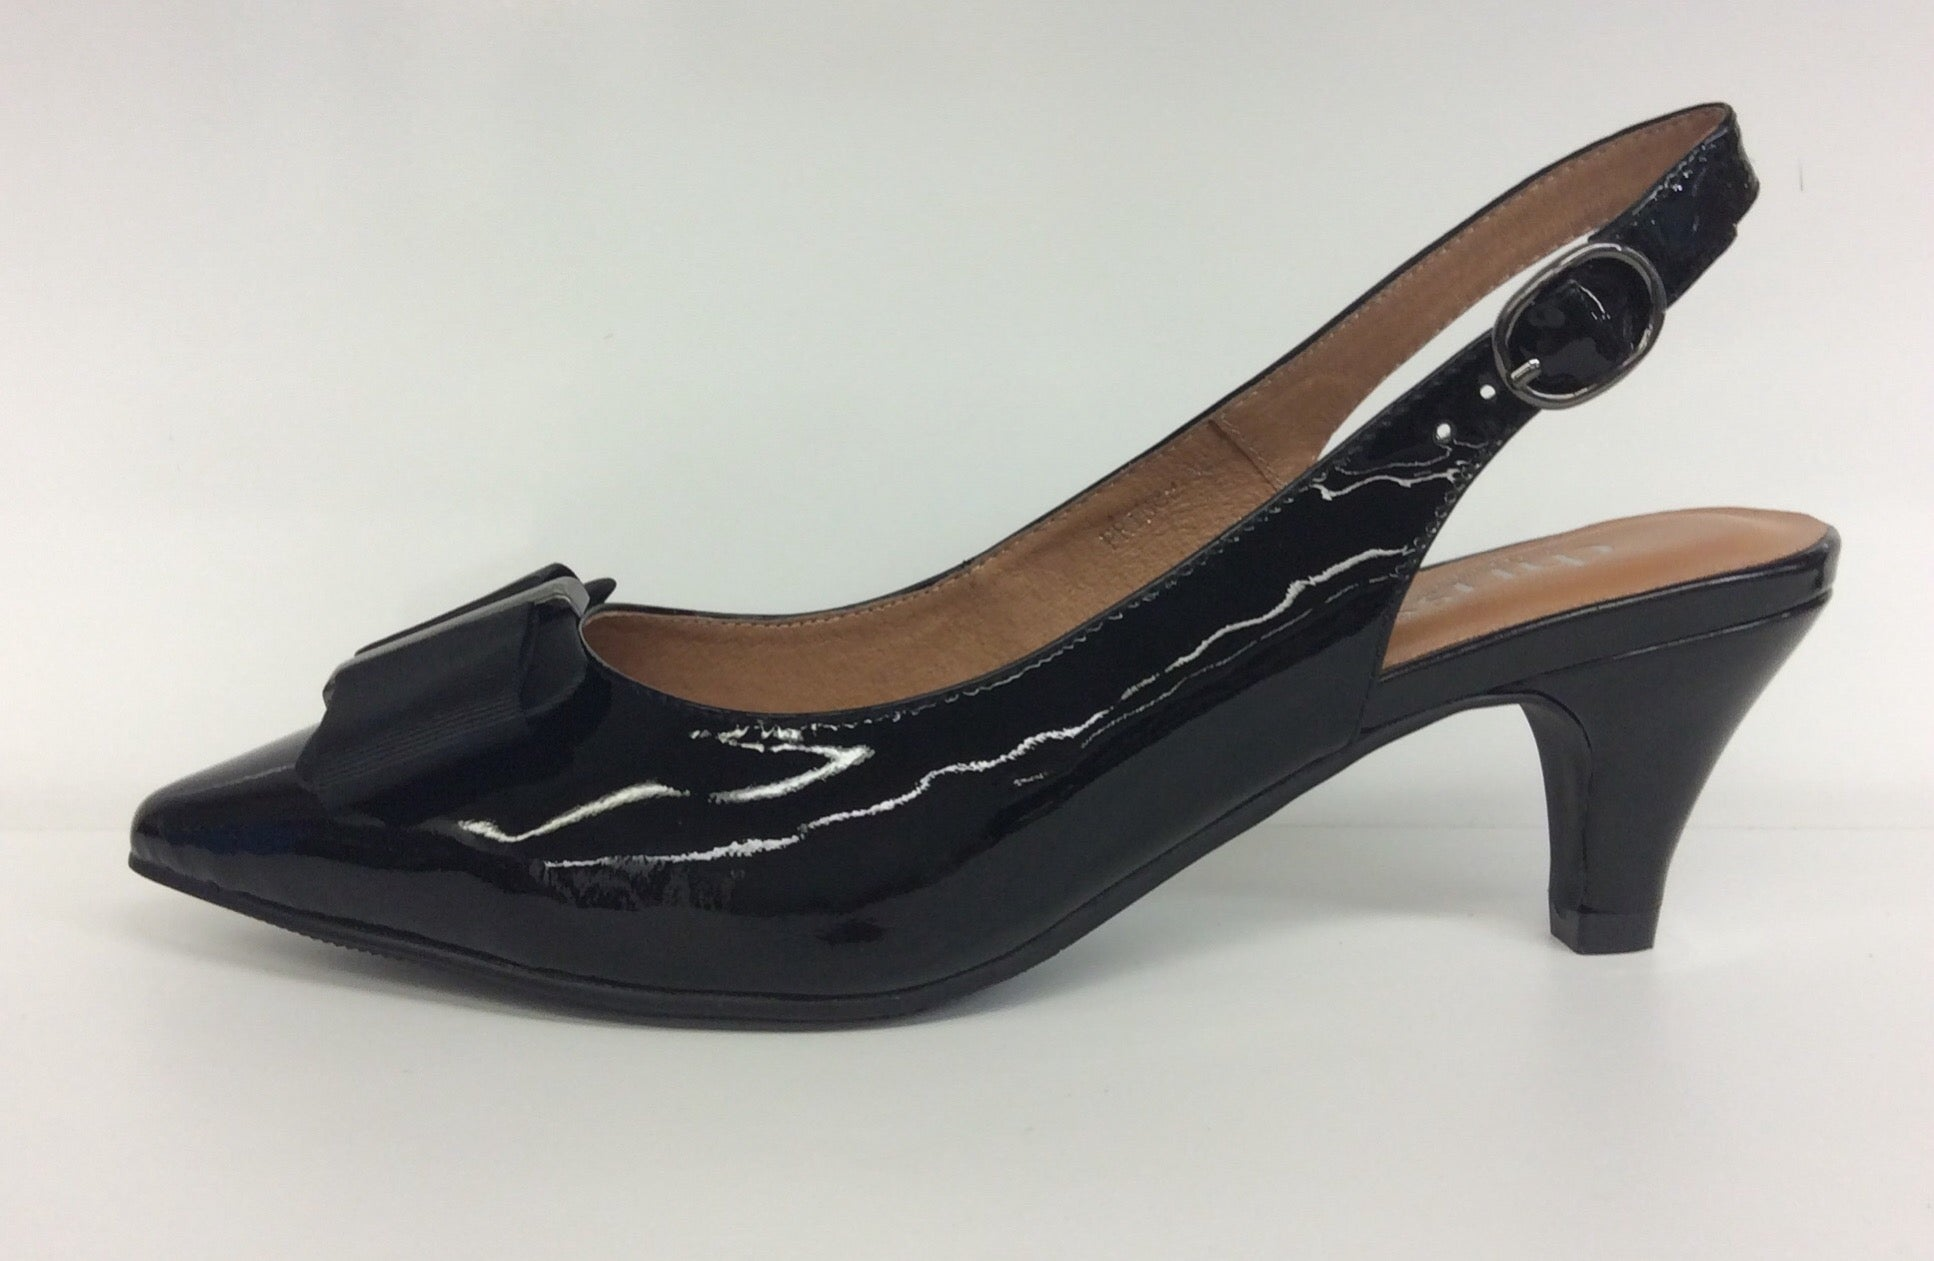 Chrissie - Prince - Black Patent - Sole Sister Shoes